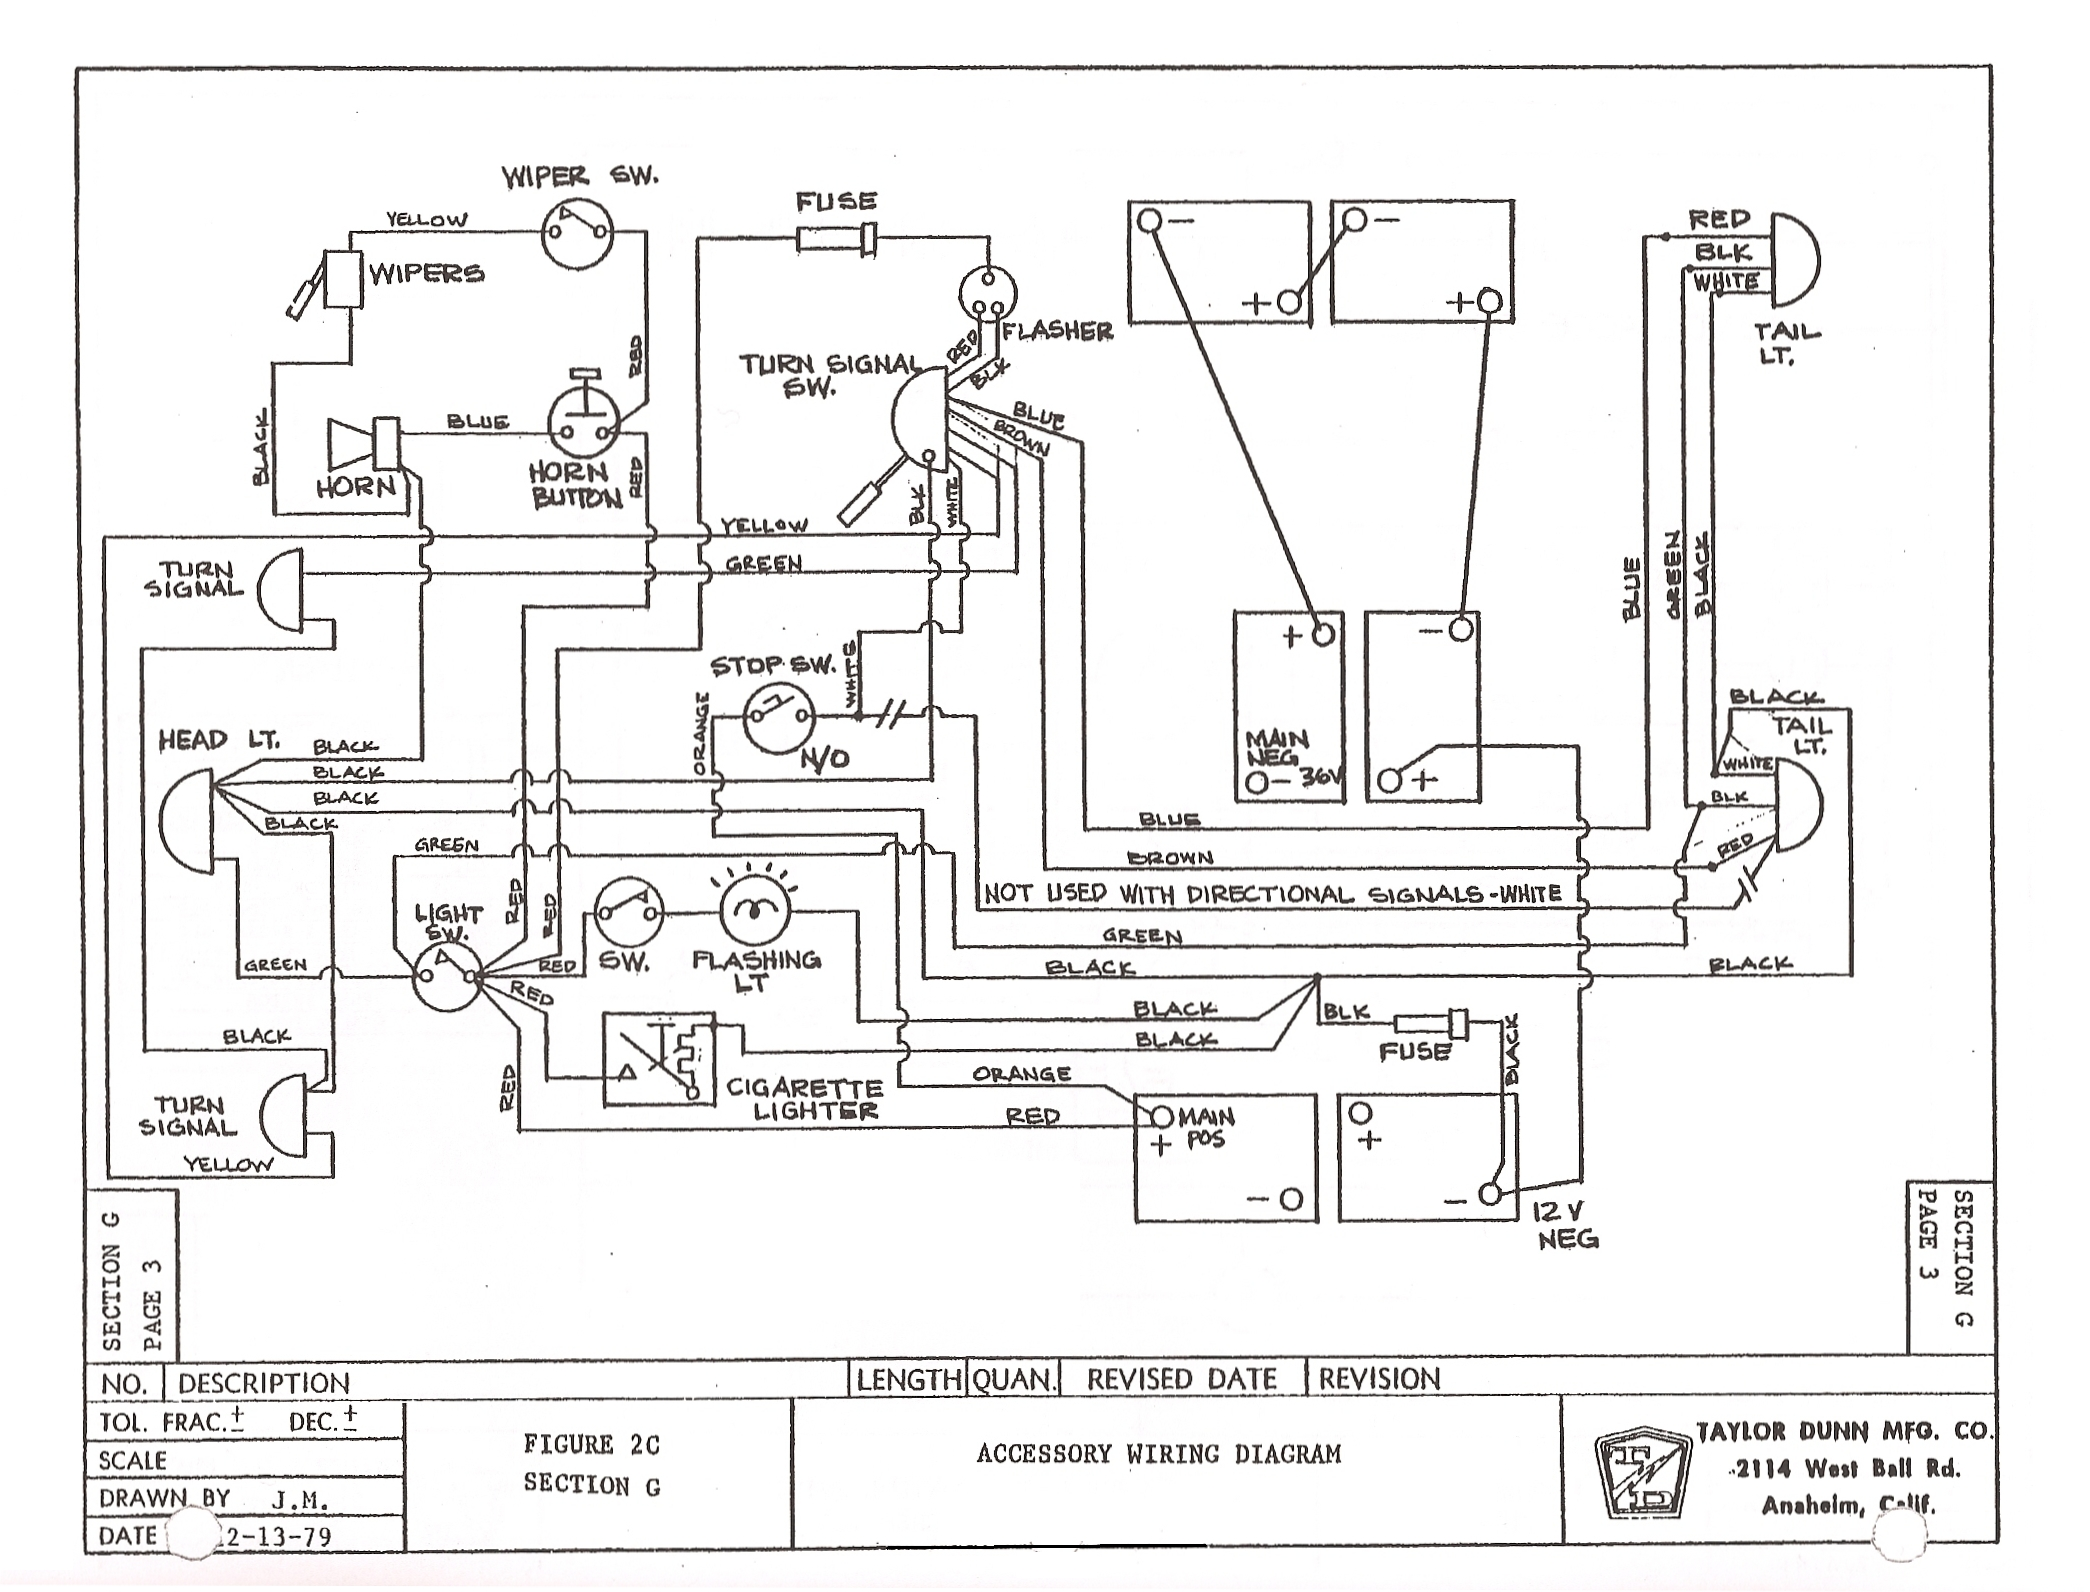 old yamaha electric golf cart battery diagram